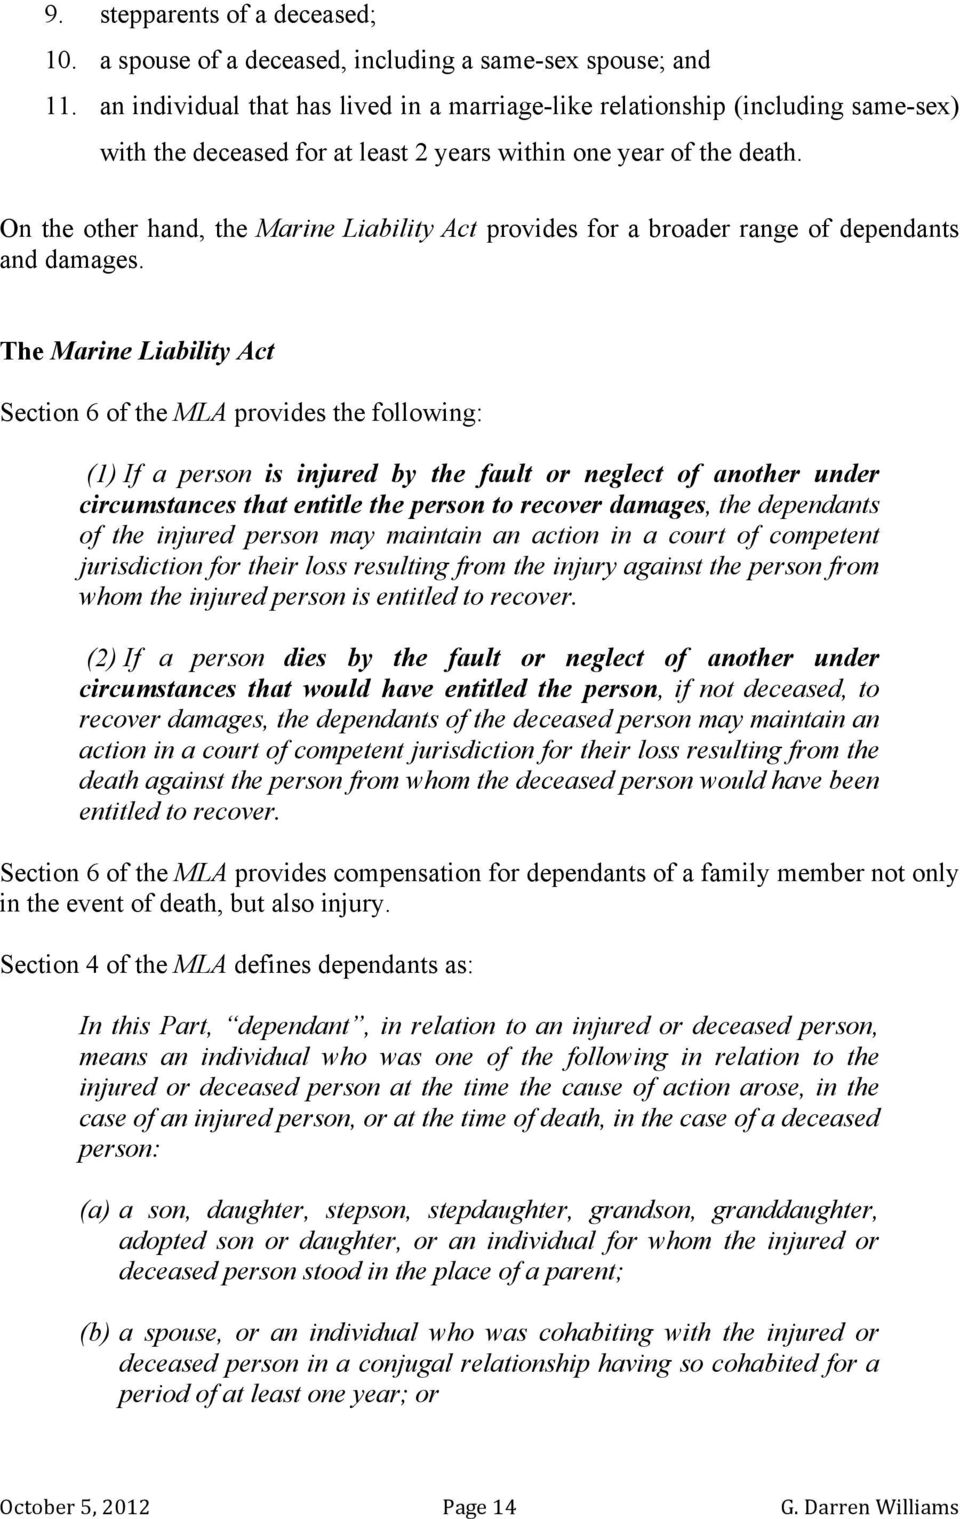 On the other hand, the Marine Liability Act provides for a broader range of dependants and damages.